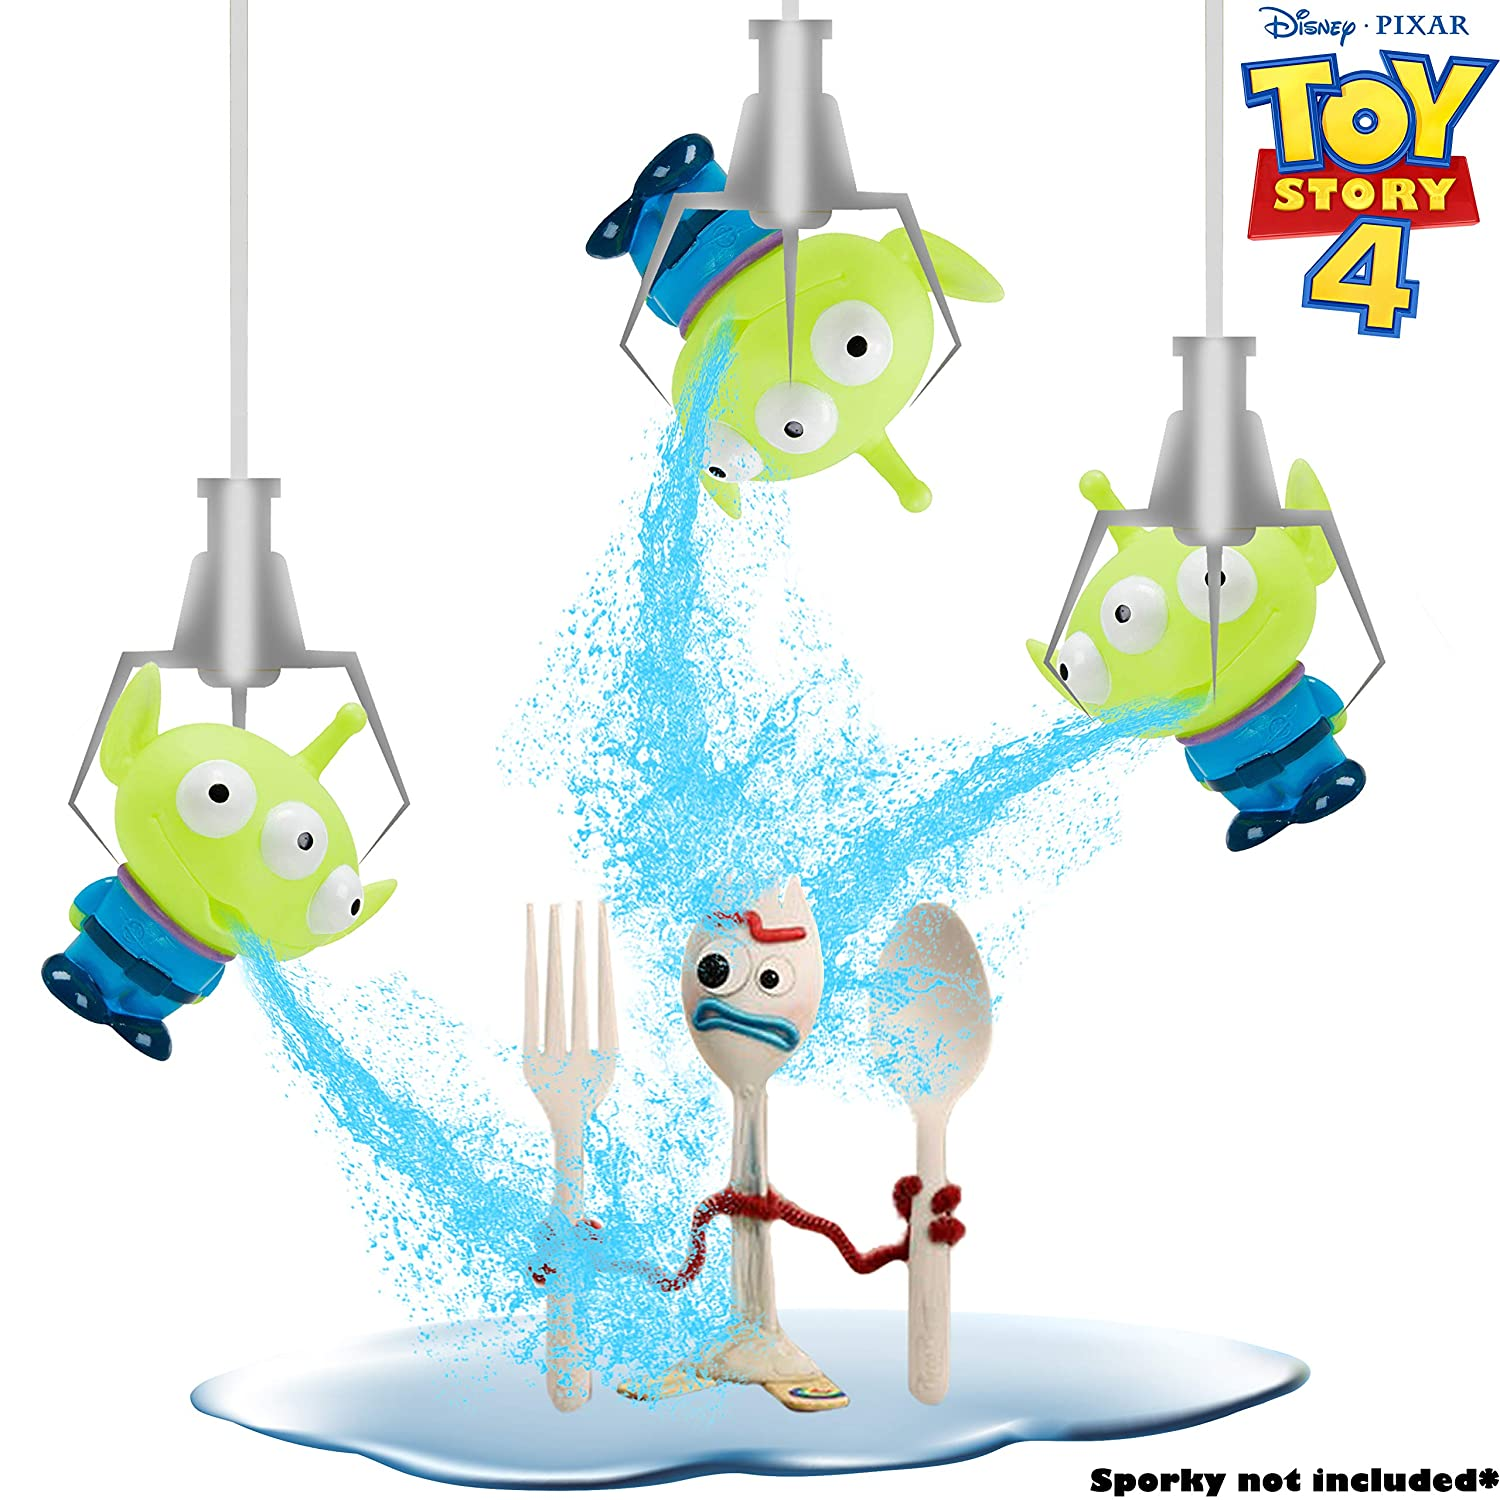 Fun Floating Creature Toy For Bath Time Or Swimming Pool Disney Pixar Toy Story Set Of 3 Alien Figurine Water Squirters For Children Outdoor Or Indoor Blaster Splash Game For Kids Toddlers